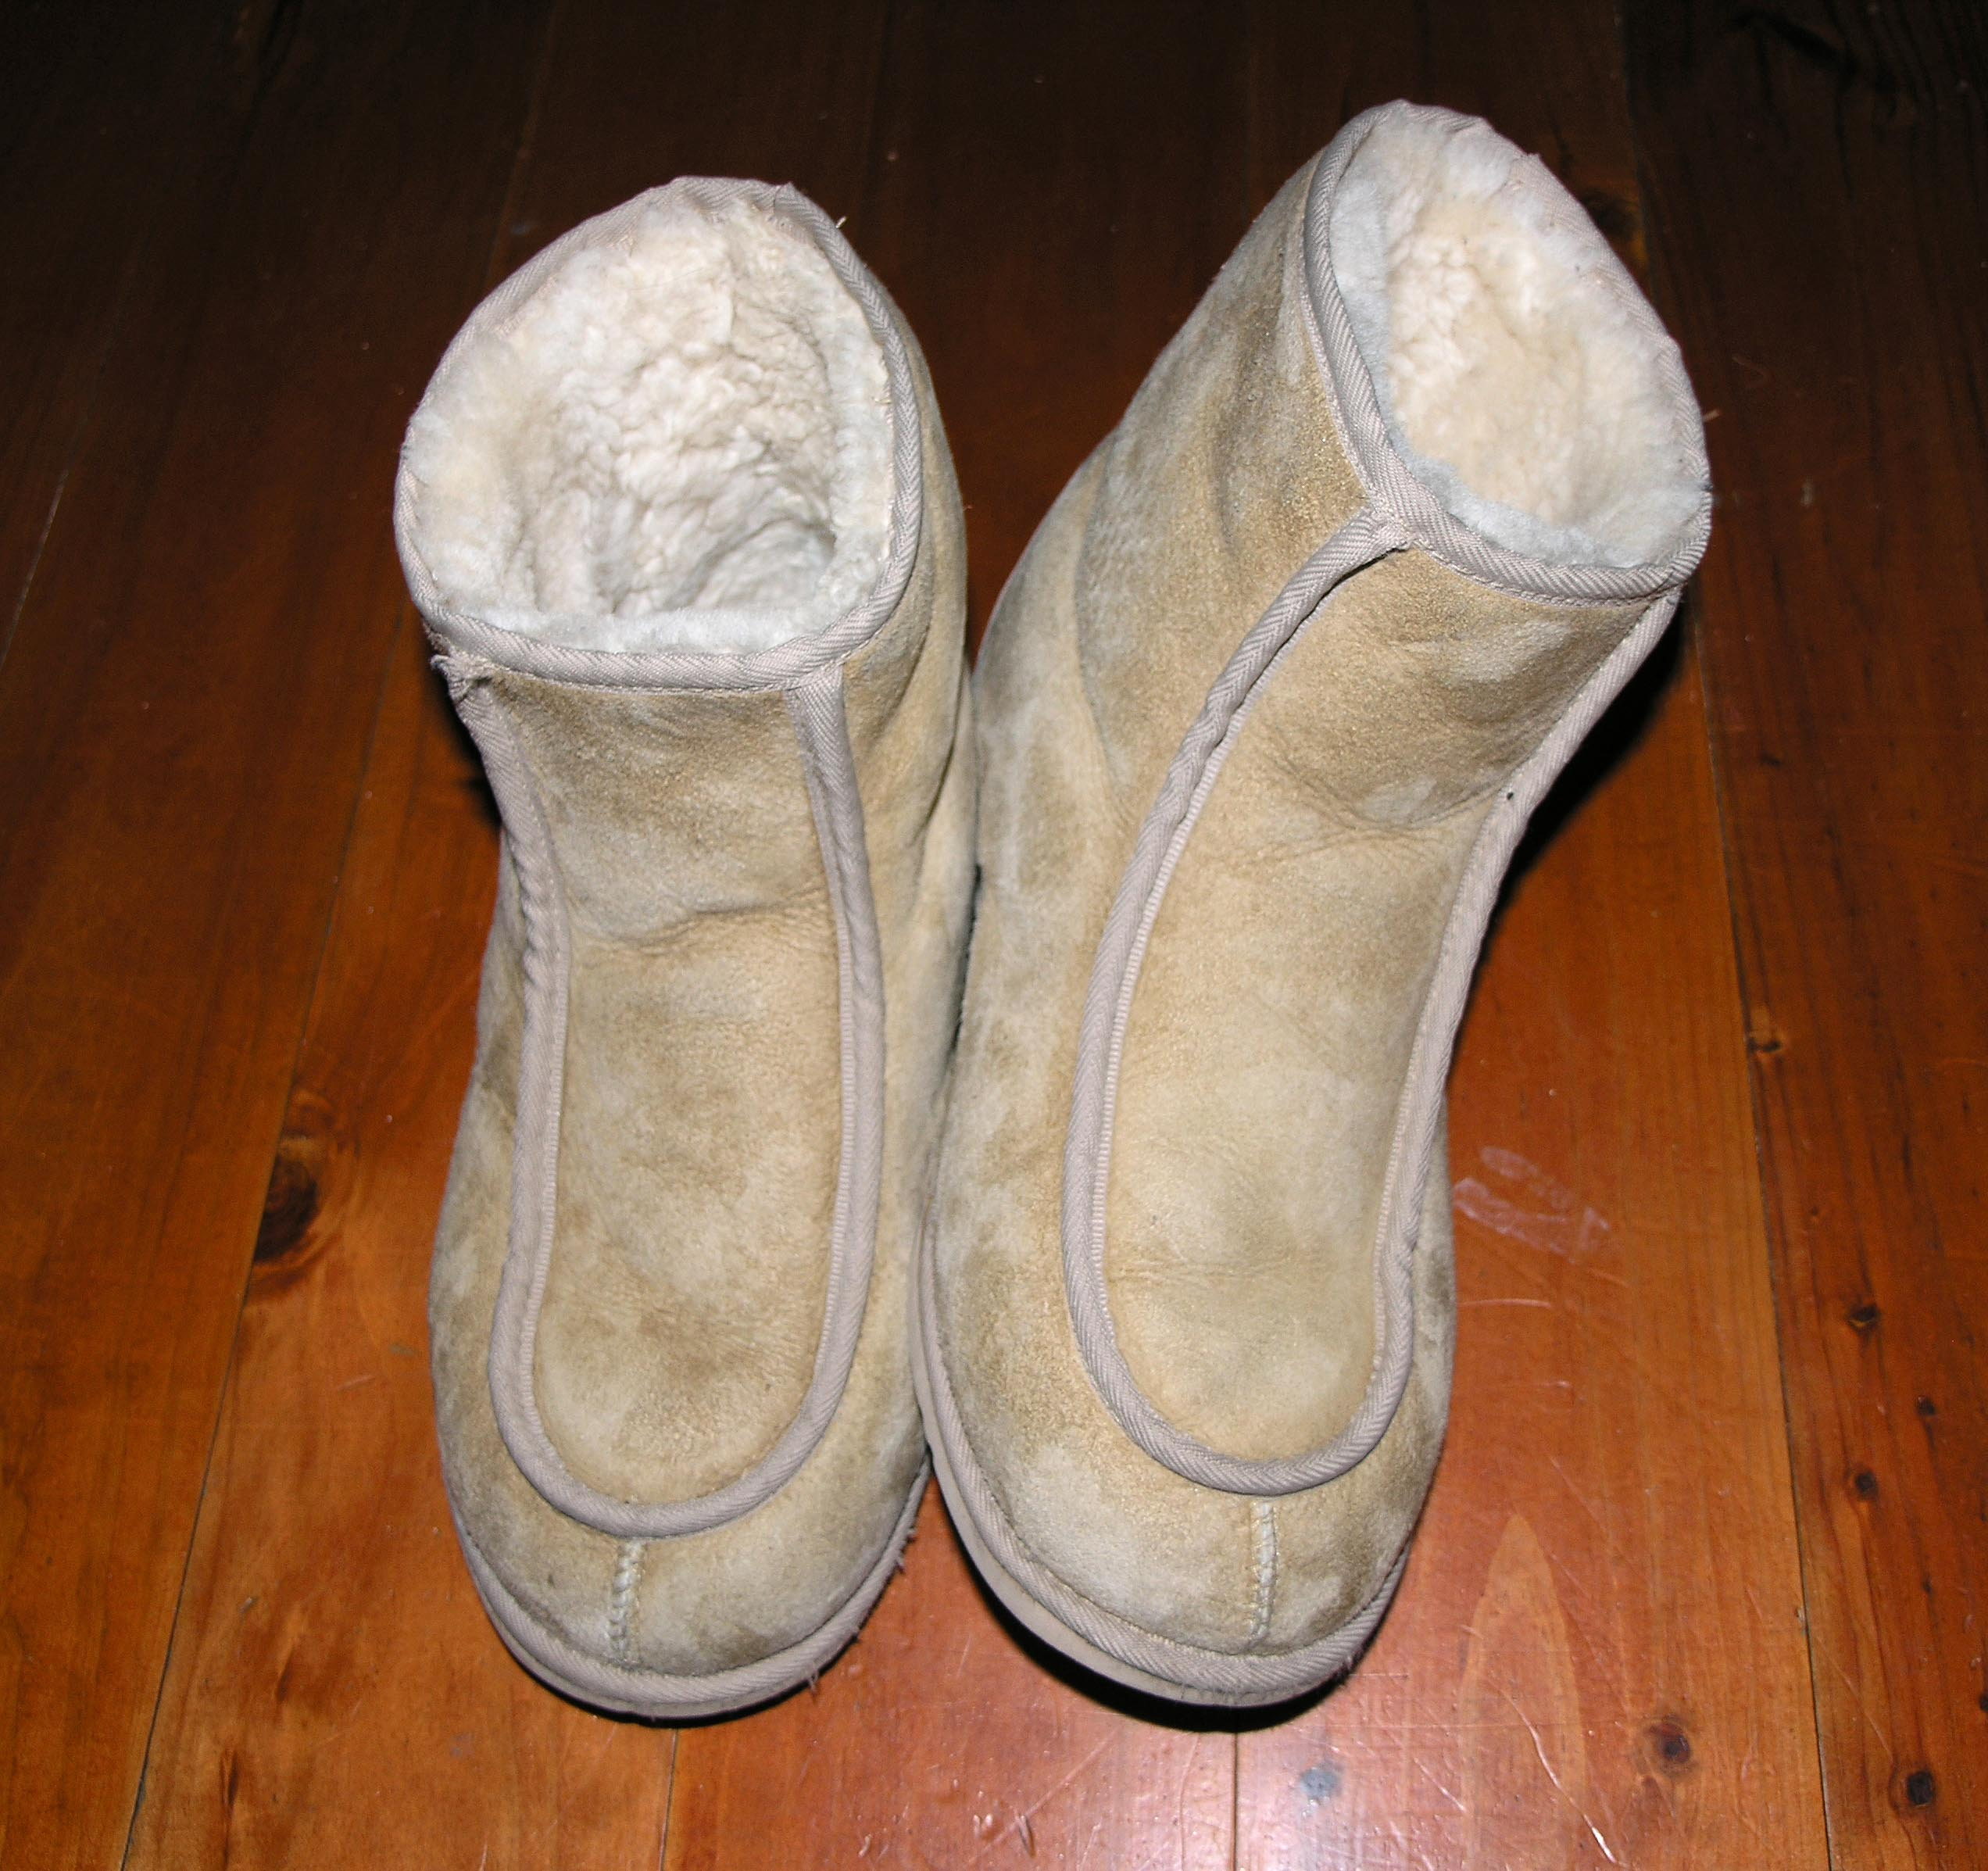 Ugg boots trademark dispute Wikipedia